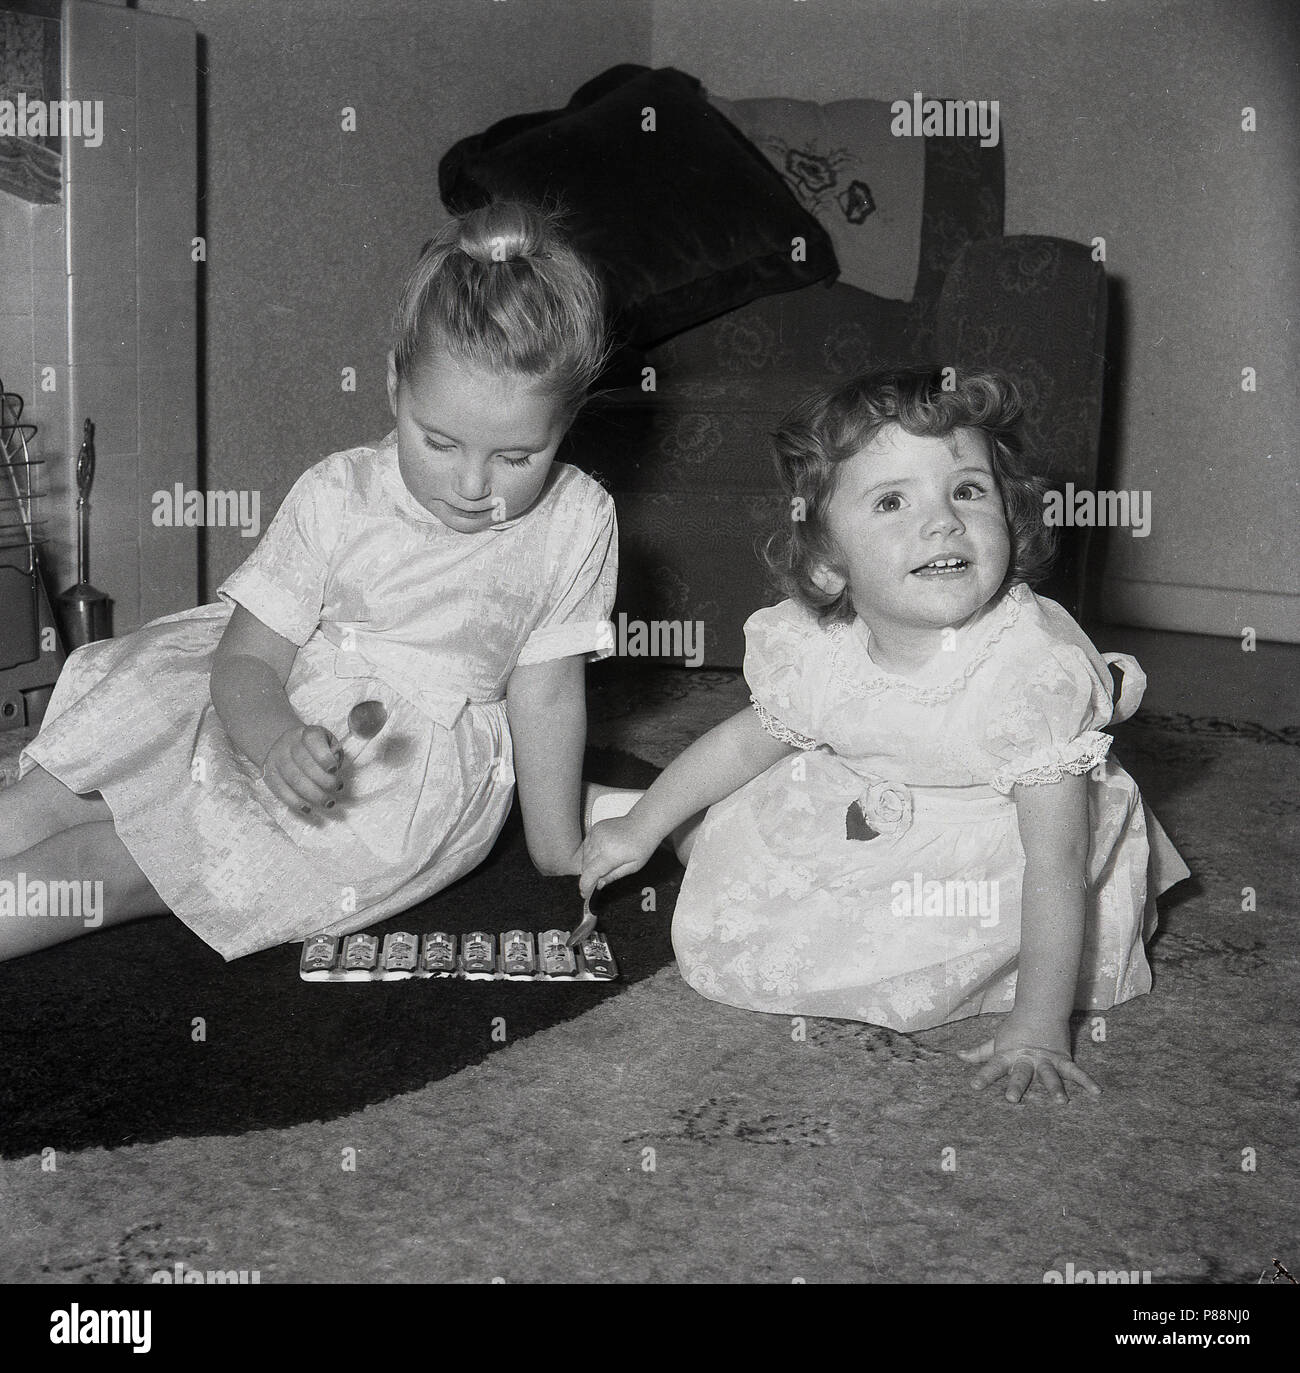 1950s, historical, two young girls sitting together on the floor of a living room playing with a small musical toy, a metal xylophone, - Stock Image